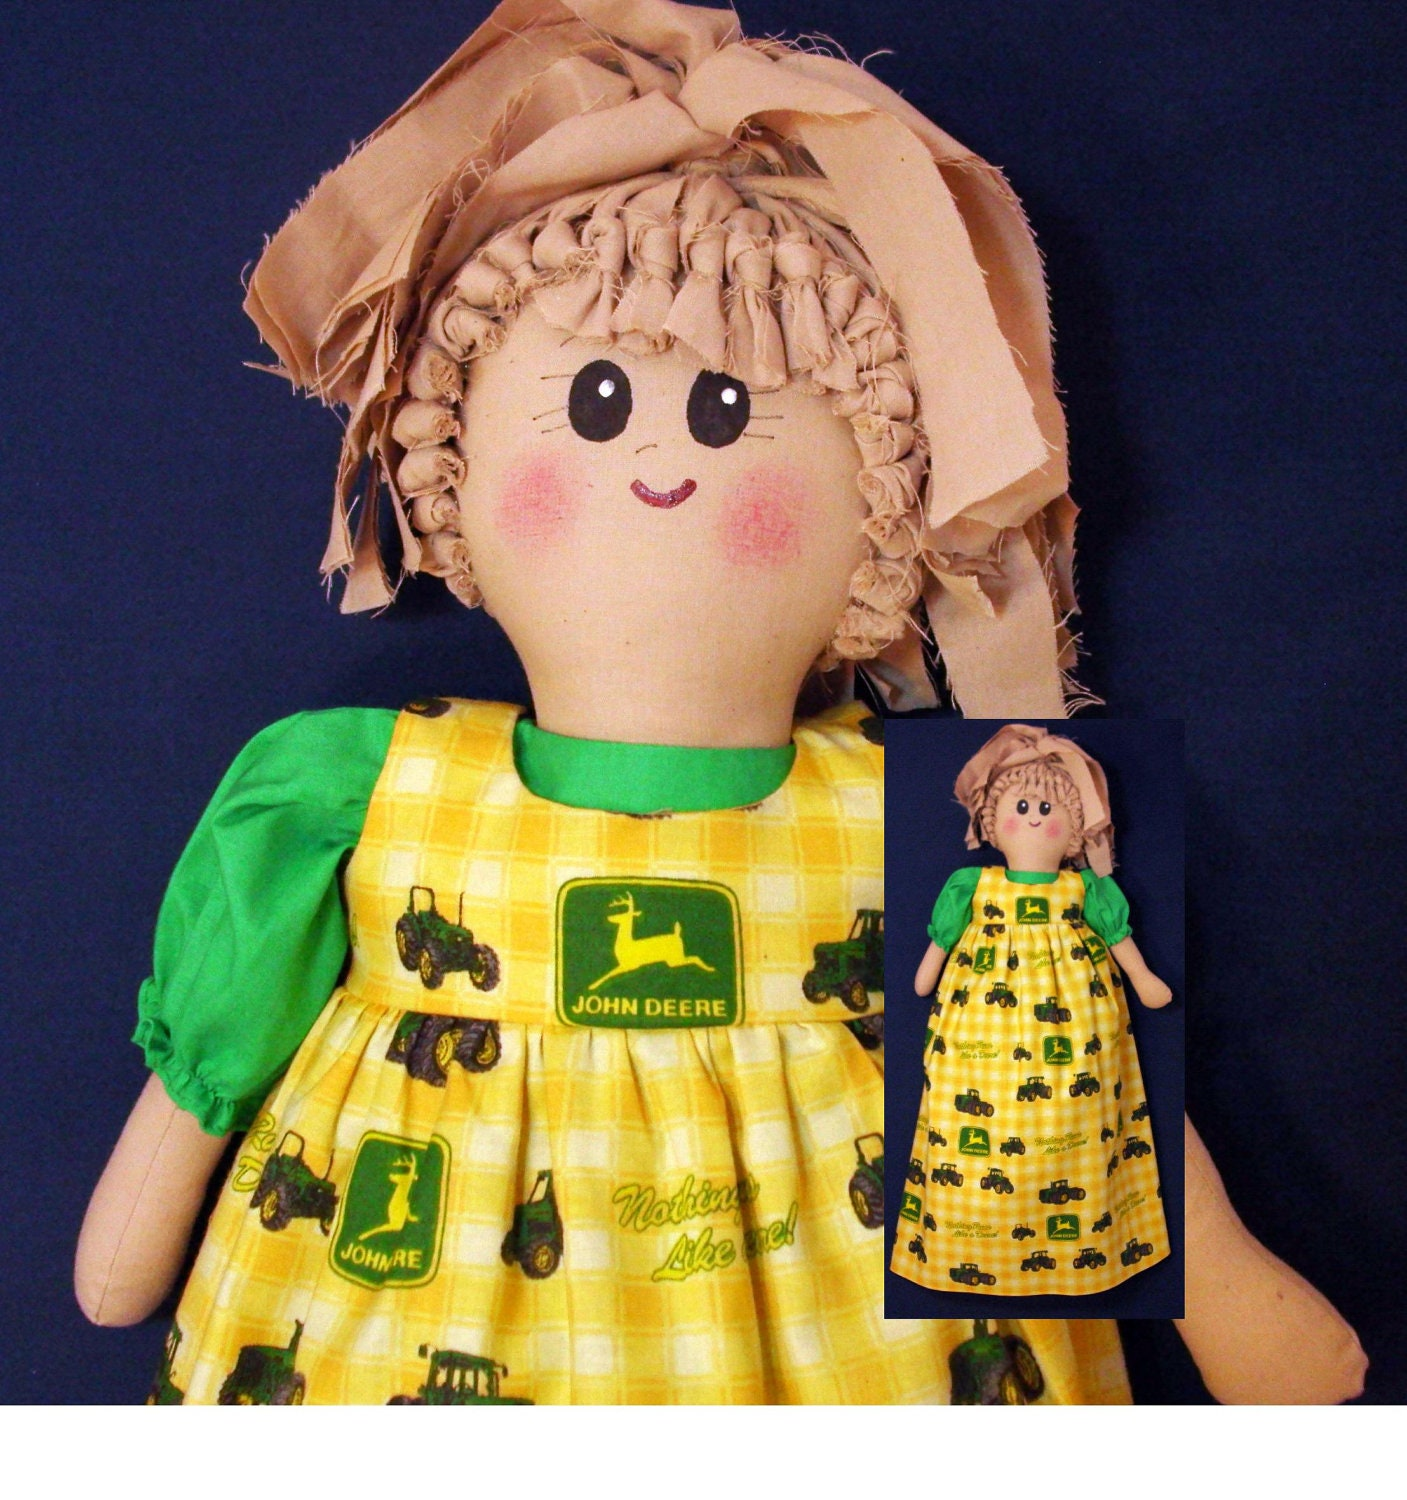 plastic bag holder doll john deere tractors grocery bag. Black Bedroom Furniture Sets. Home Design Ideas